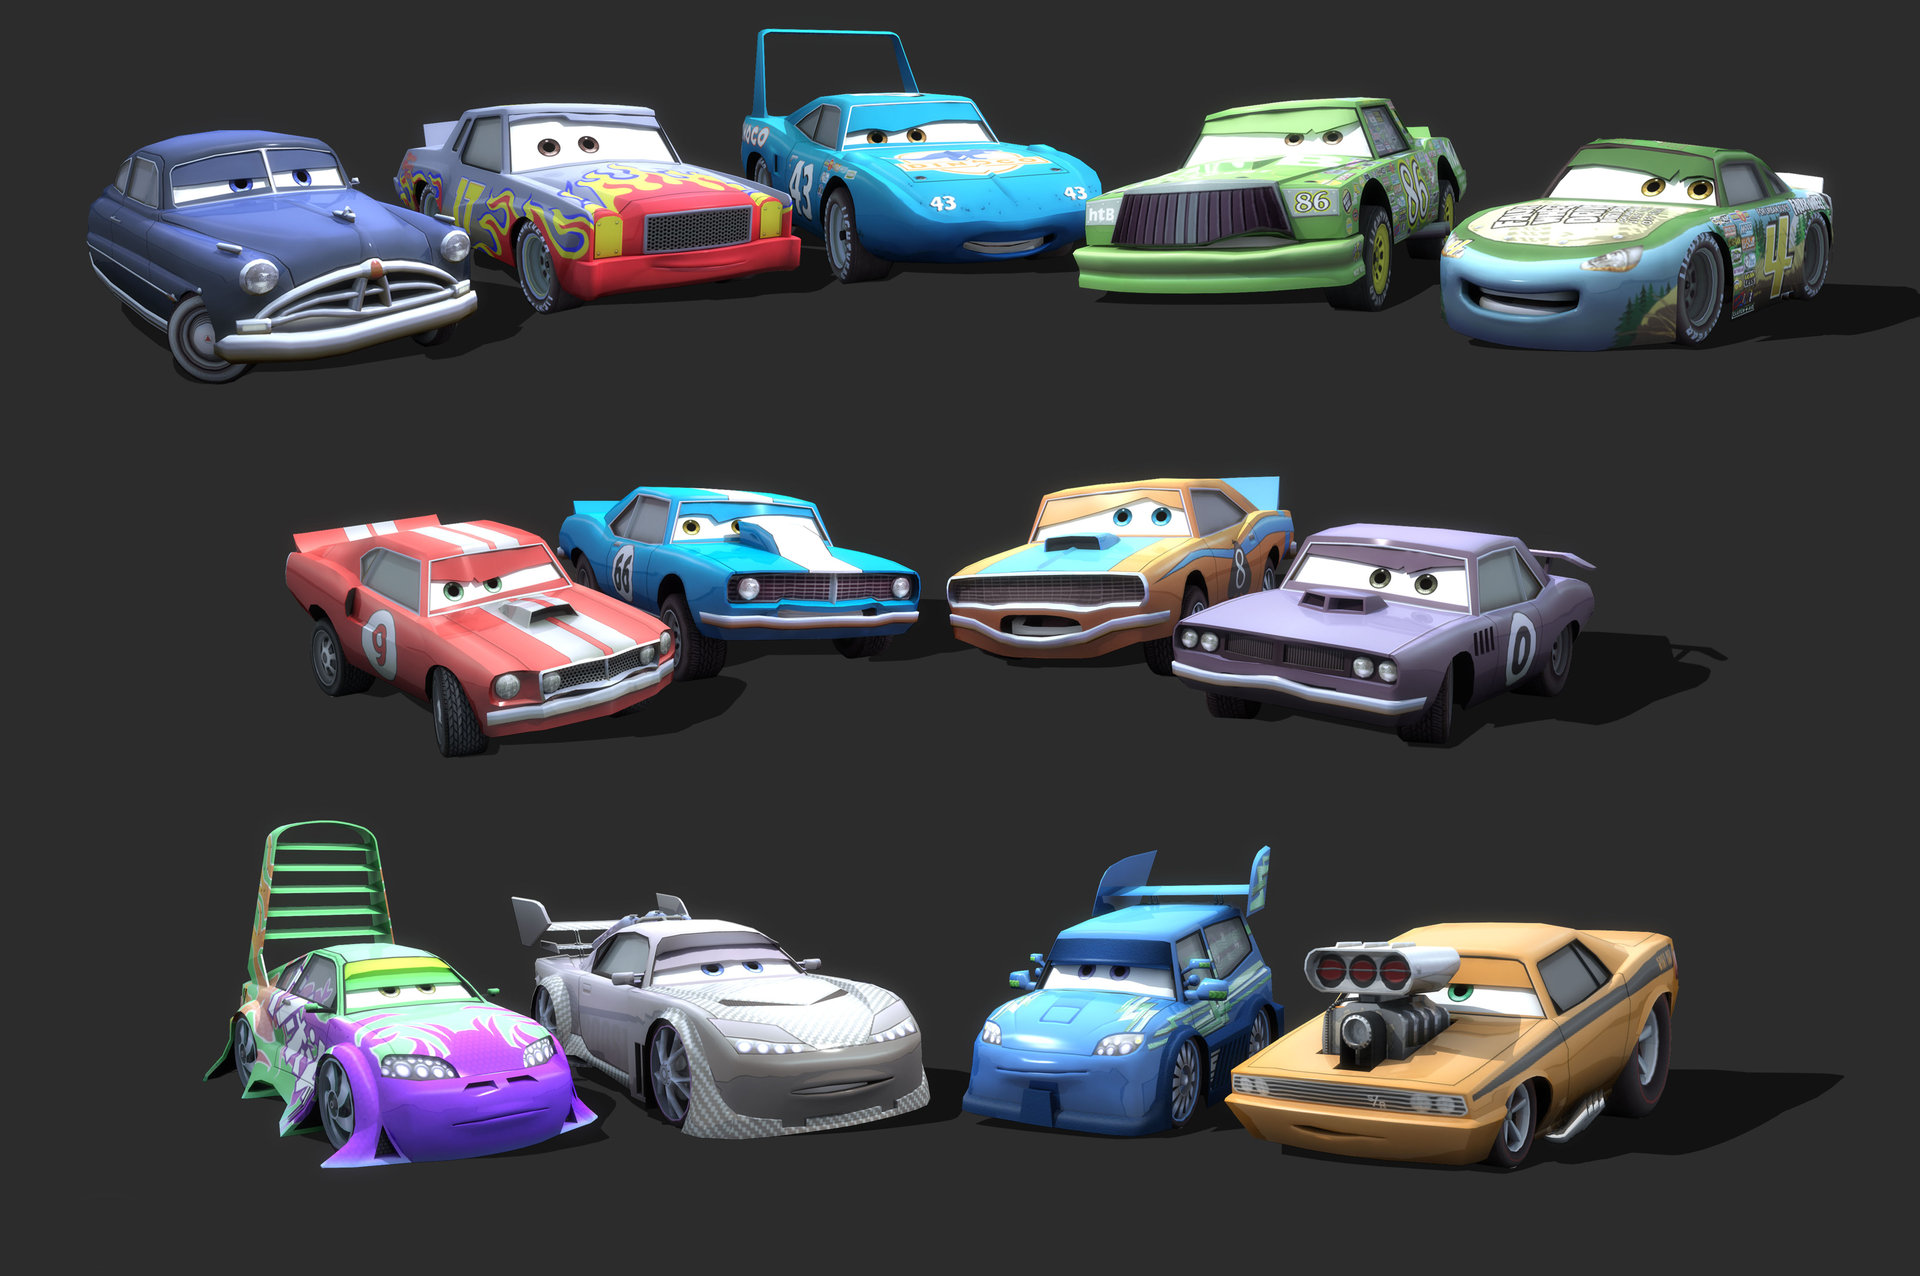 Mark van haitsma cars character collage 2